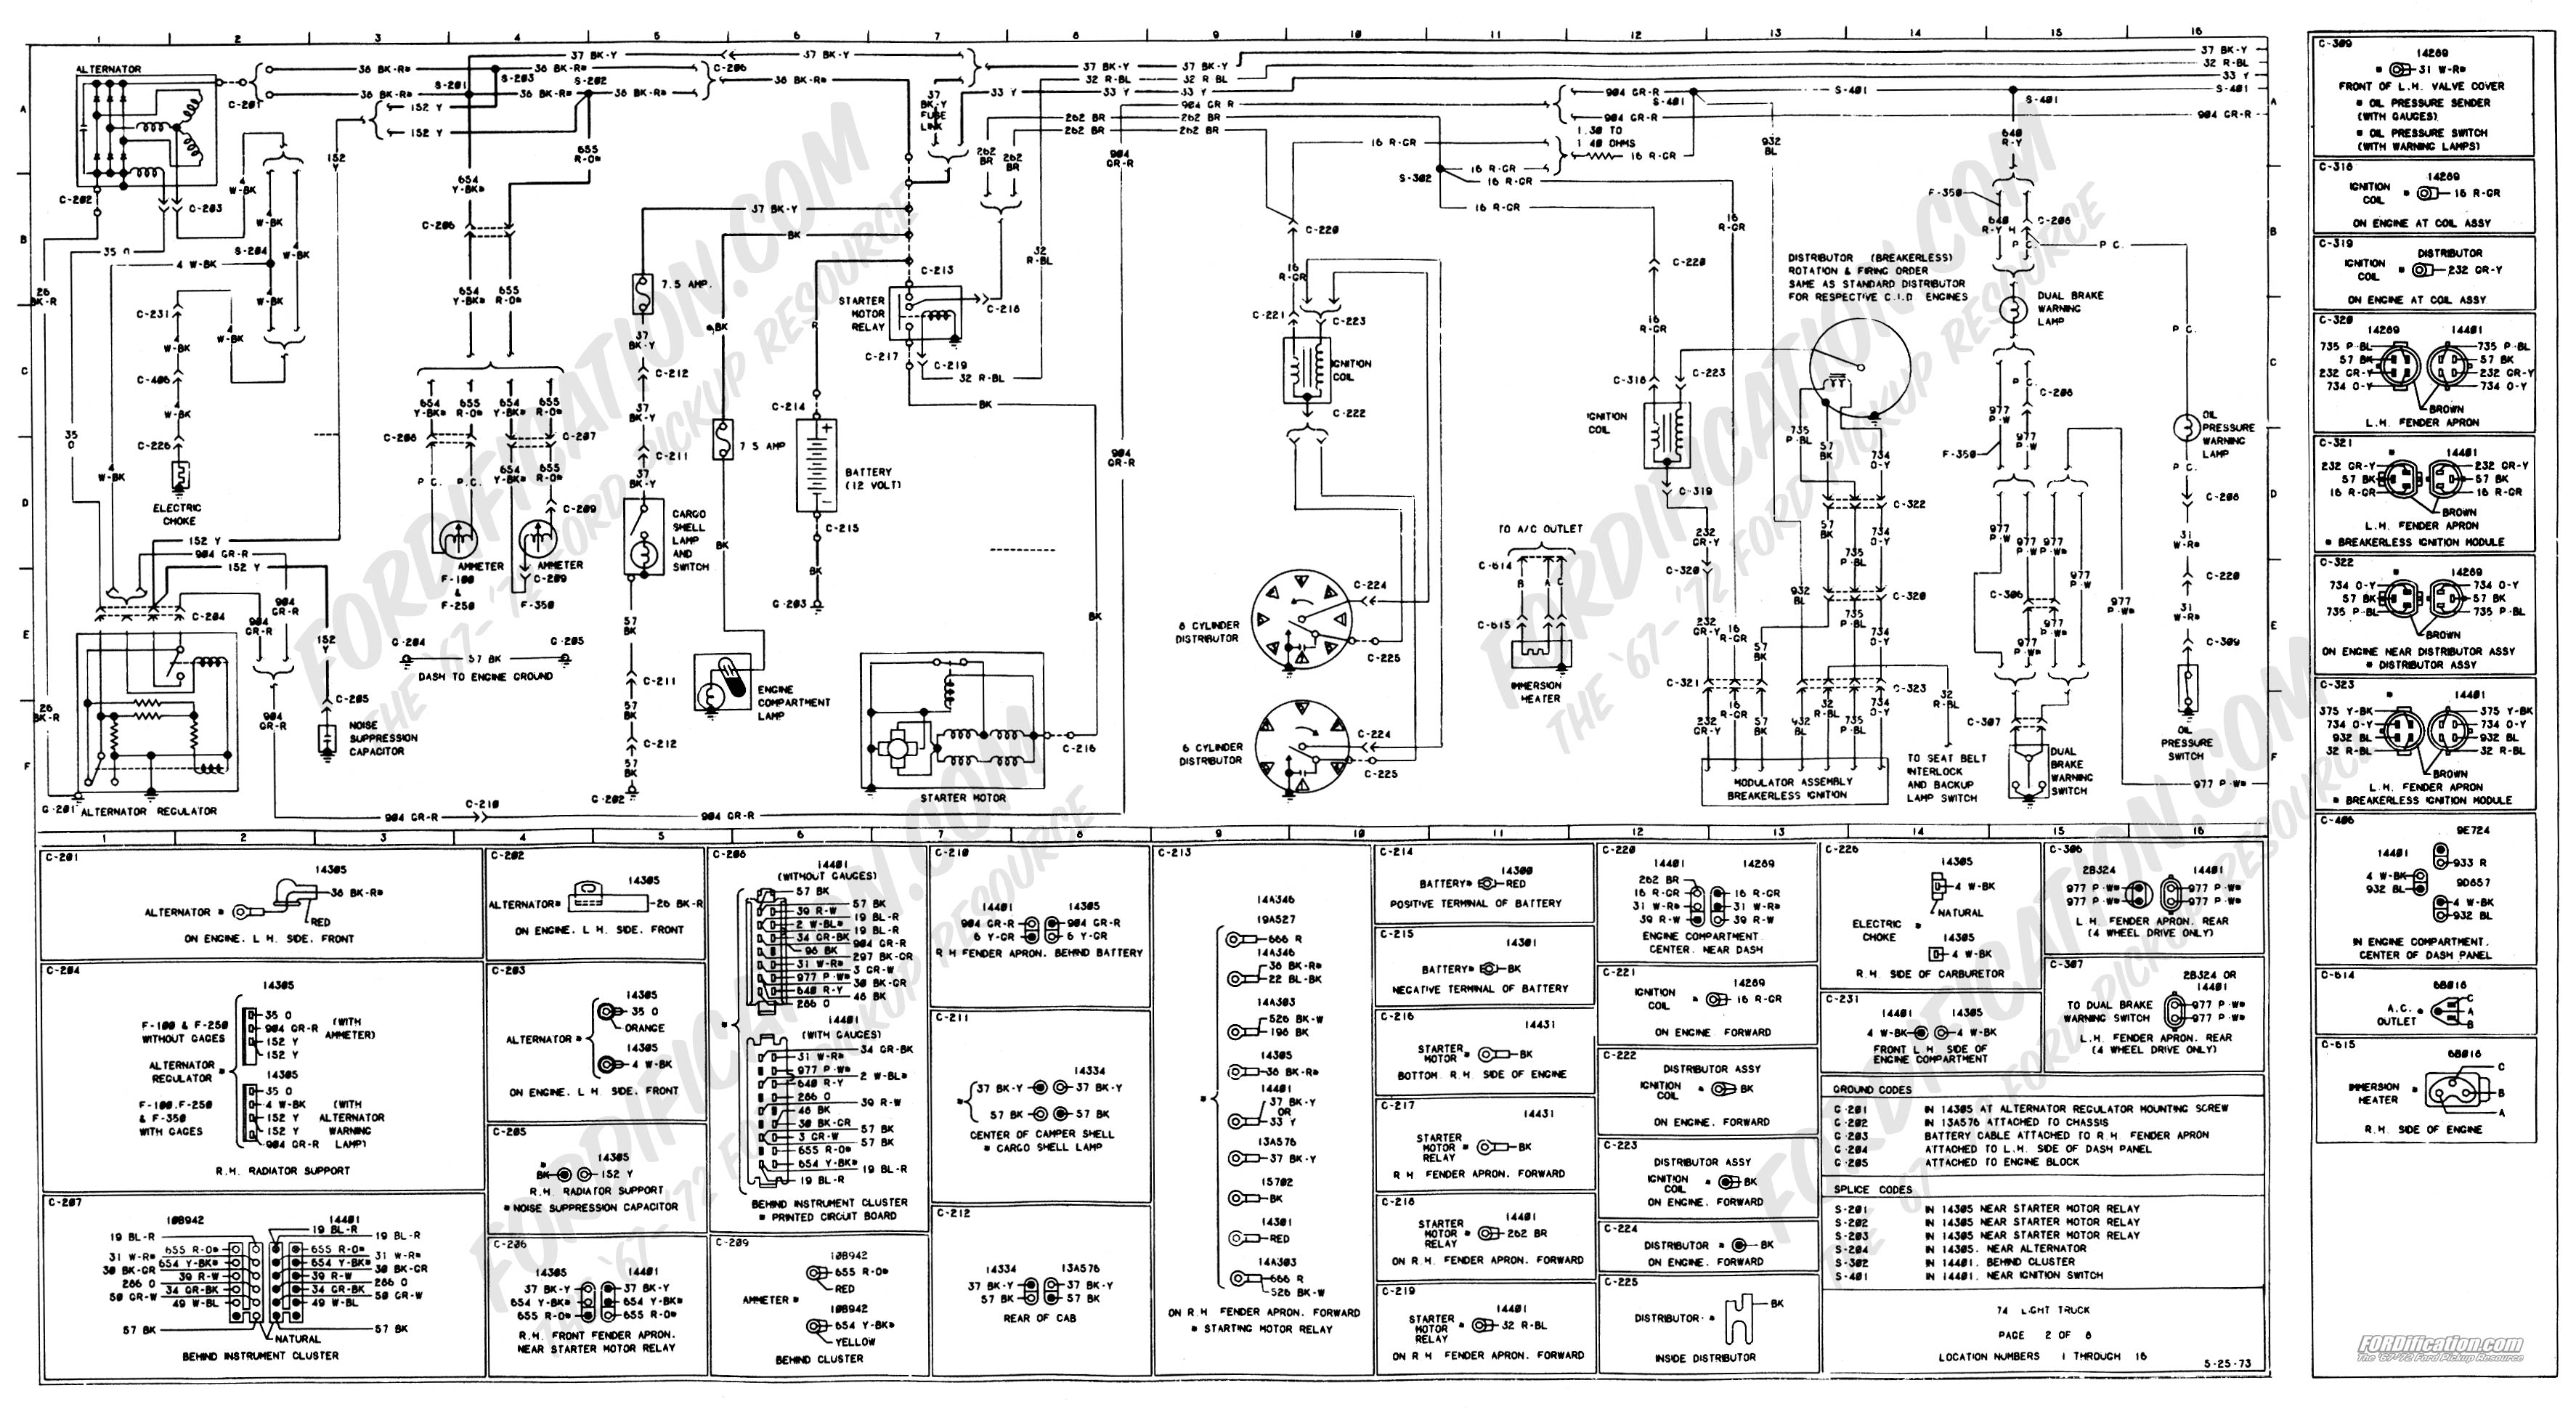 Ford F 350 Wiring Diagram For 1973 Easy Diagrams 1997 1979 Truck Schematics Fordification Net Rh